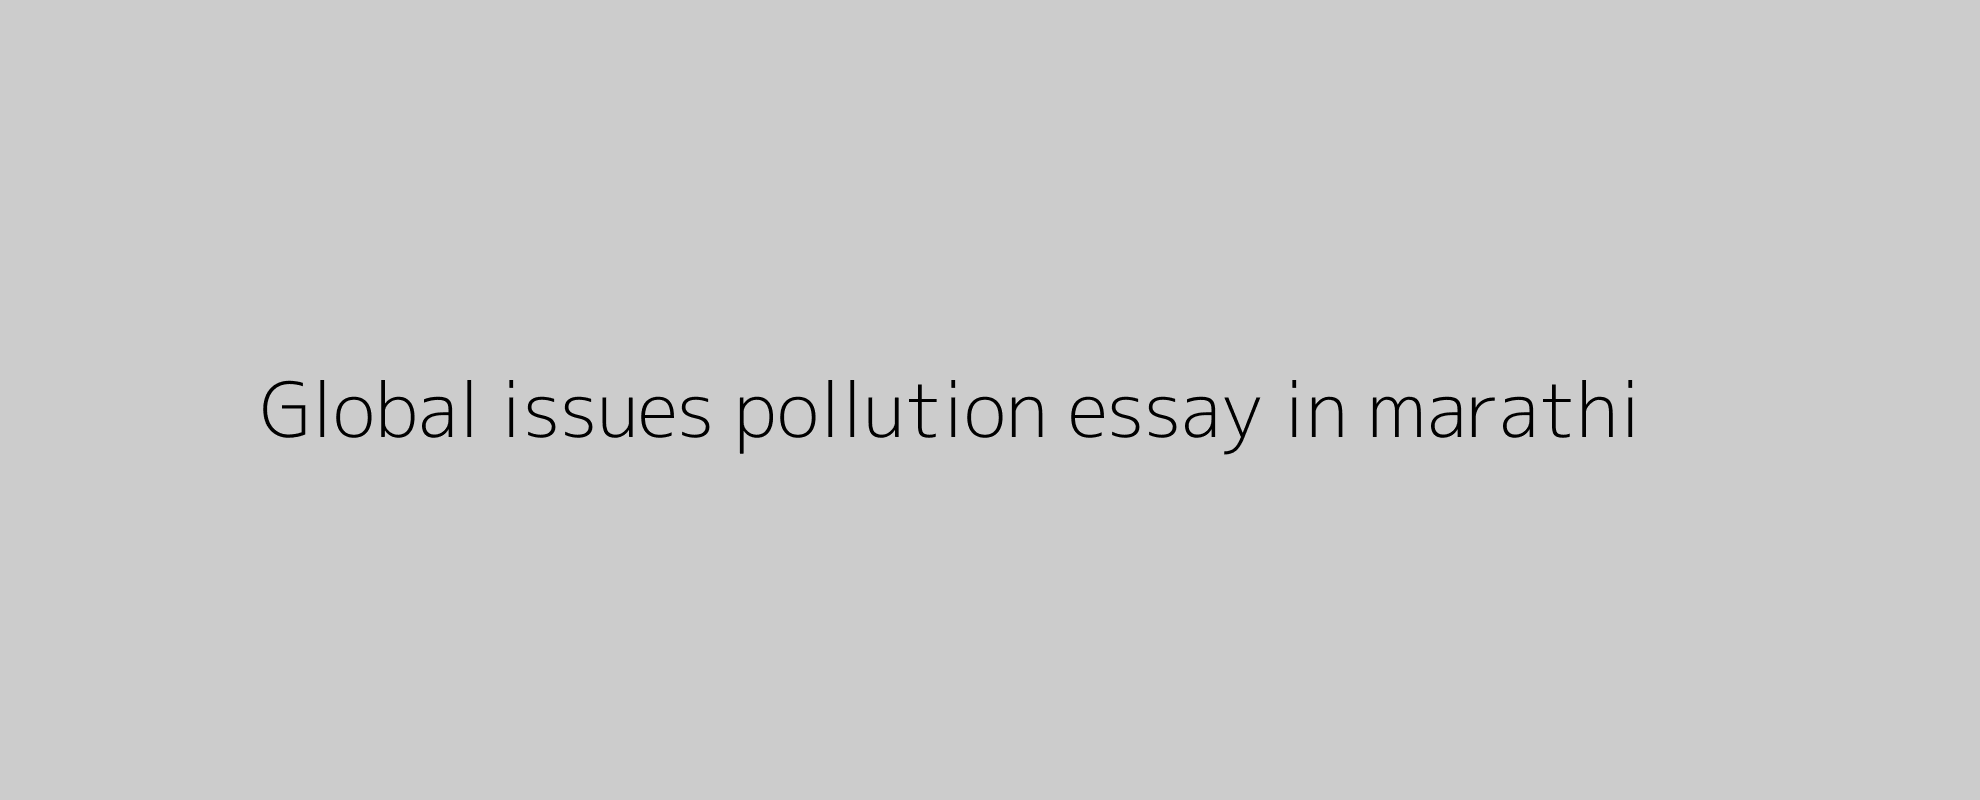 Global issues pollution essay in marathi